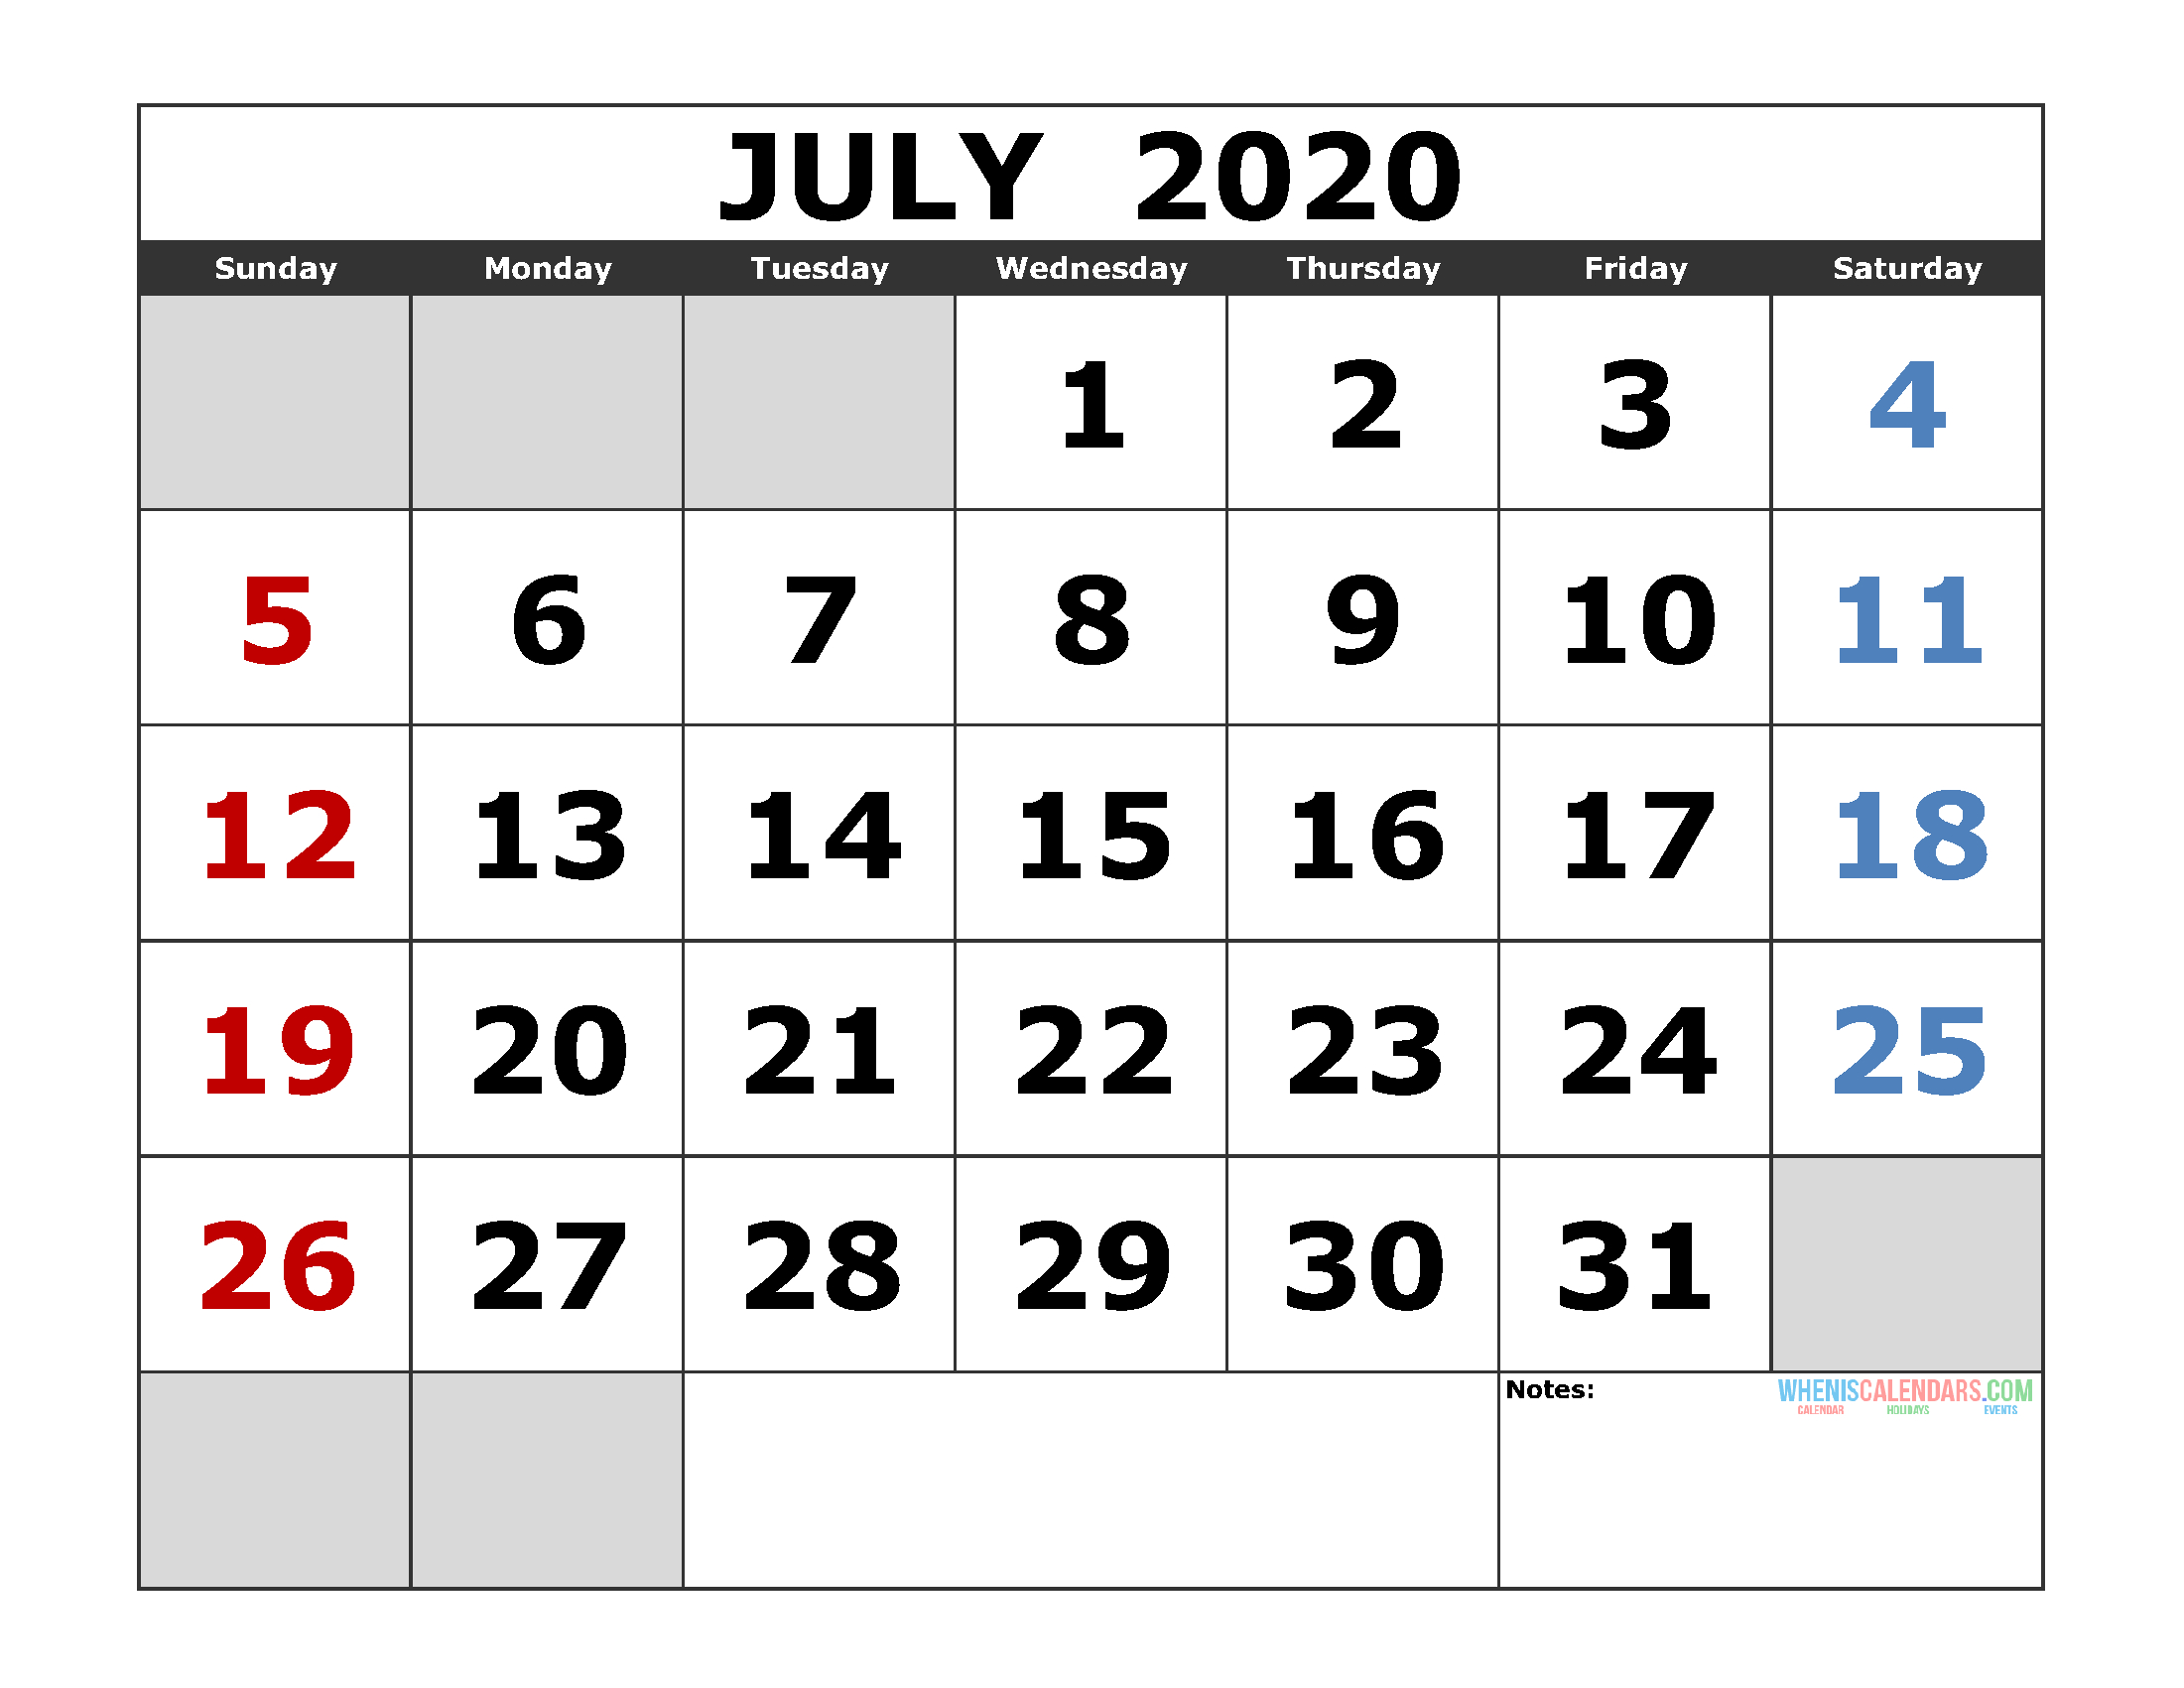 July 2020 Printable Calendar Template Excel, Pdf, Image [Us